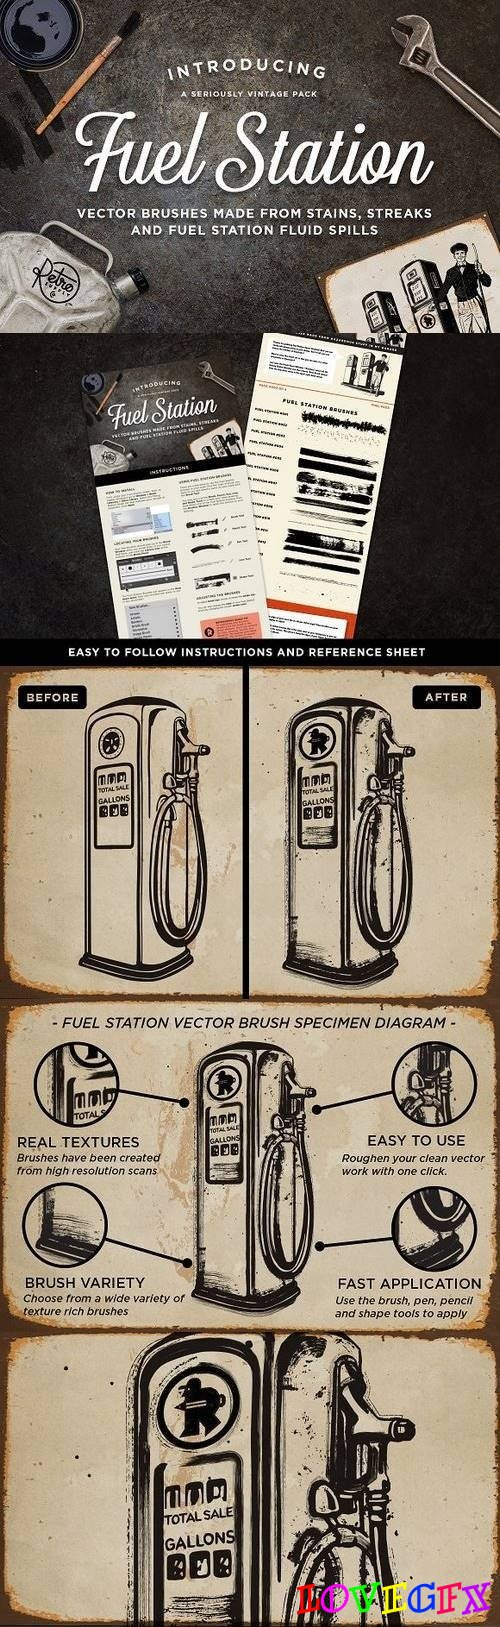 Fuel Station | Vector Grime Brushes 1243339